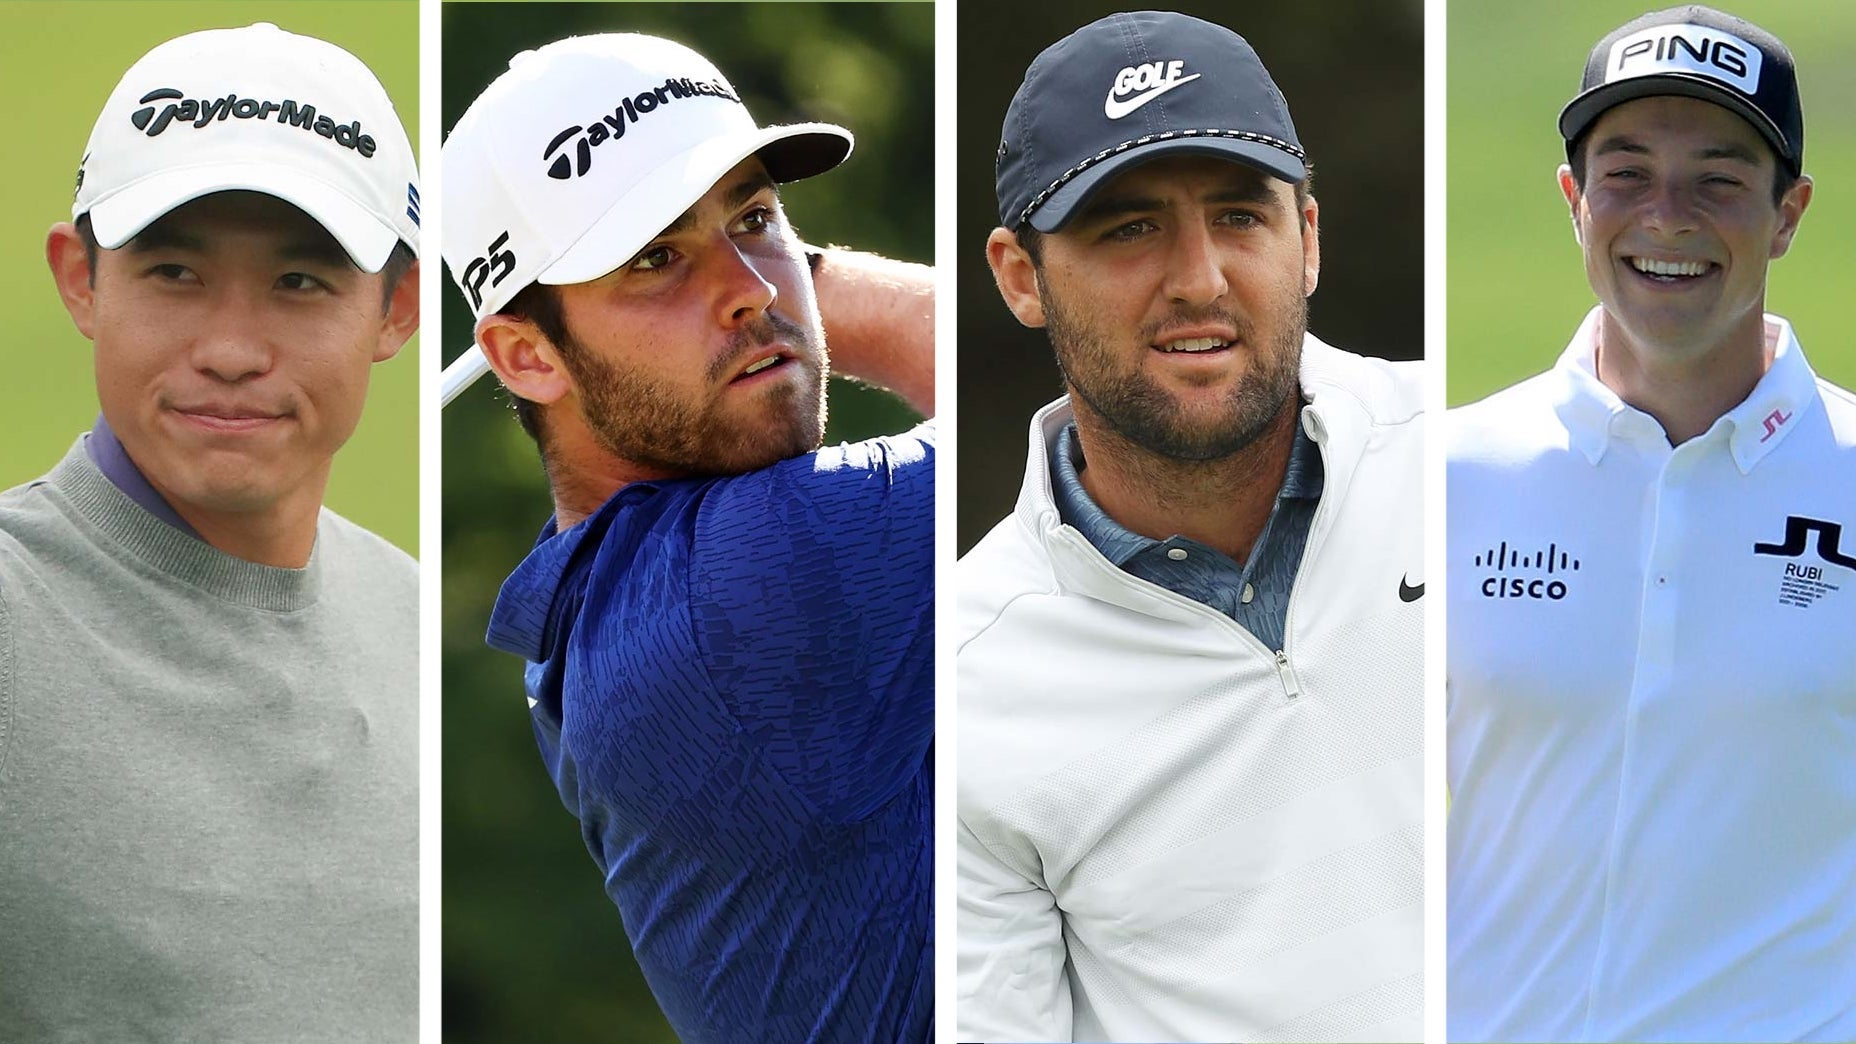 The top 10 golfers under 25